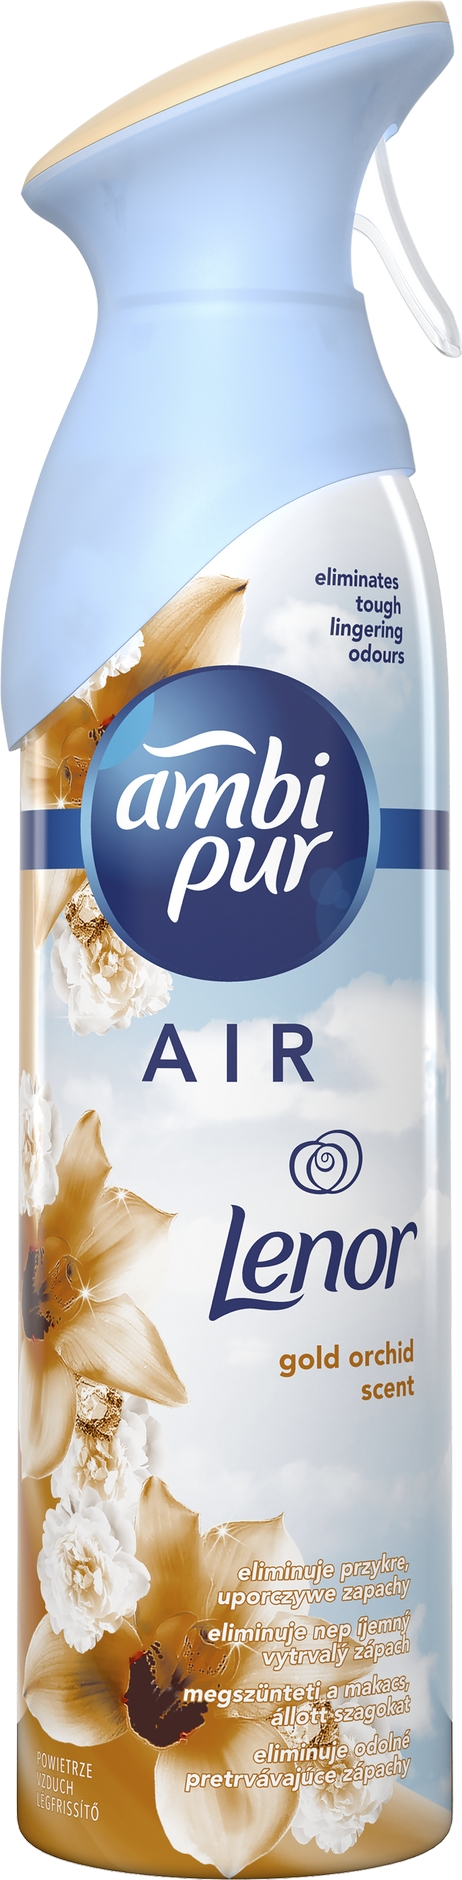 AMBI PUR Spray Lenor Gold Orchid 300 ml